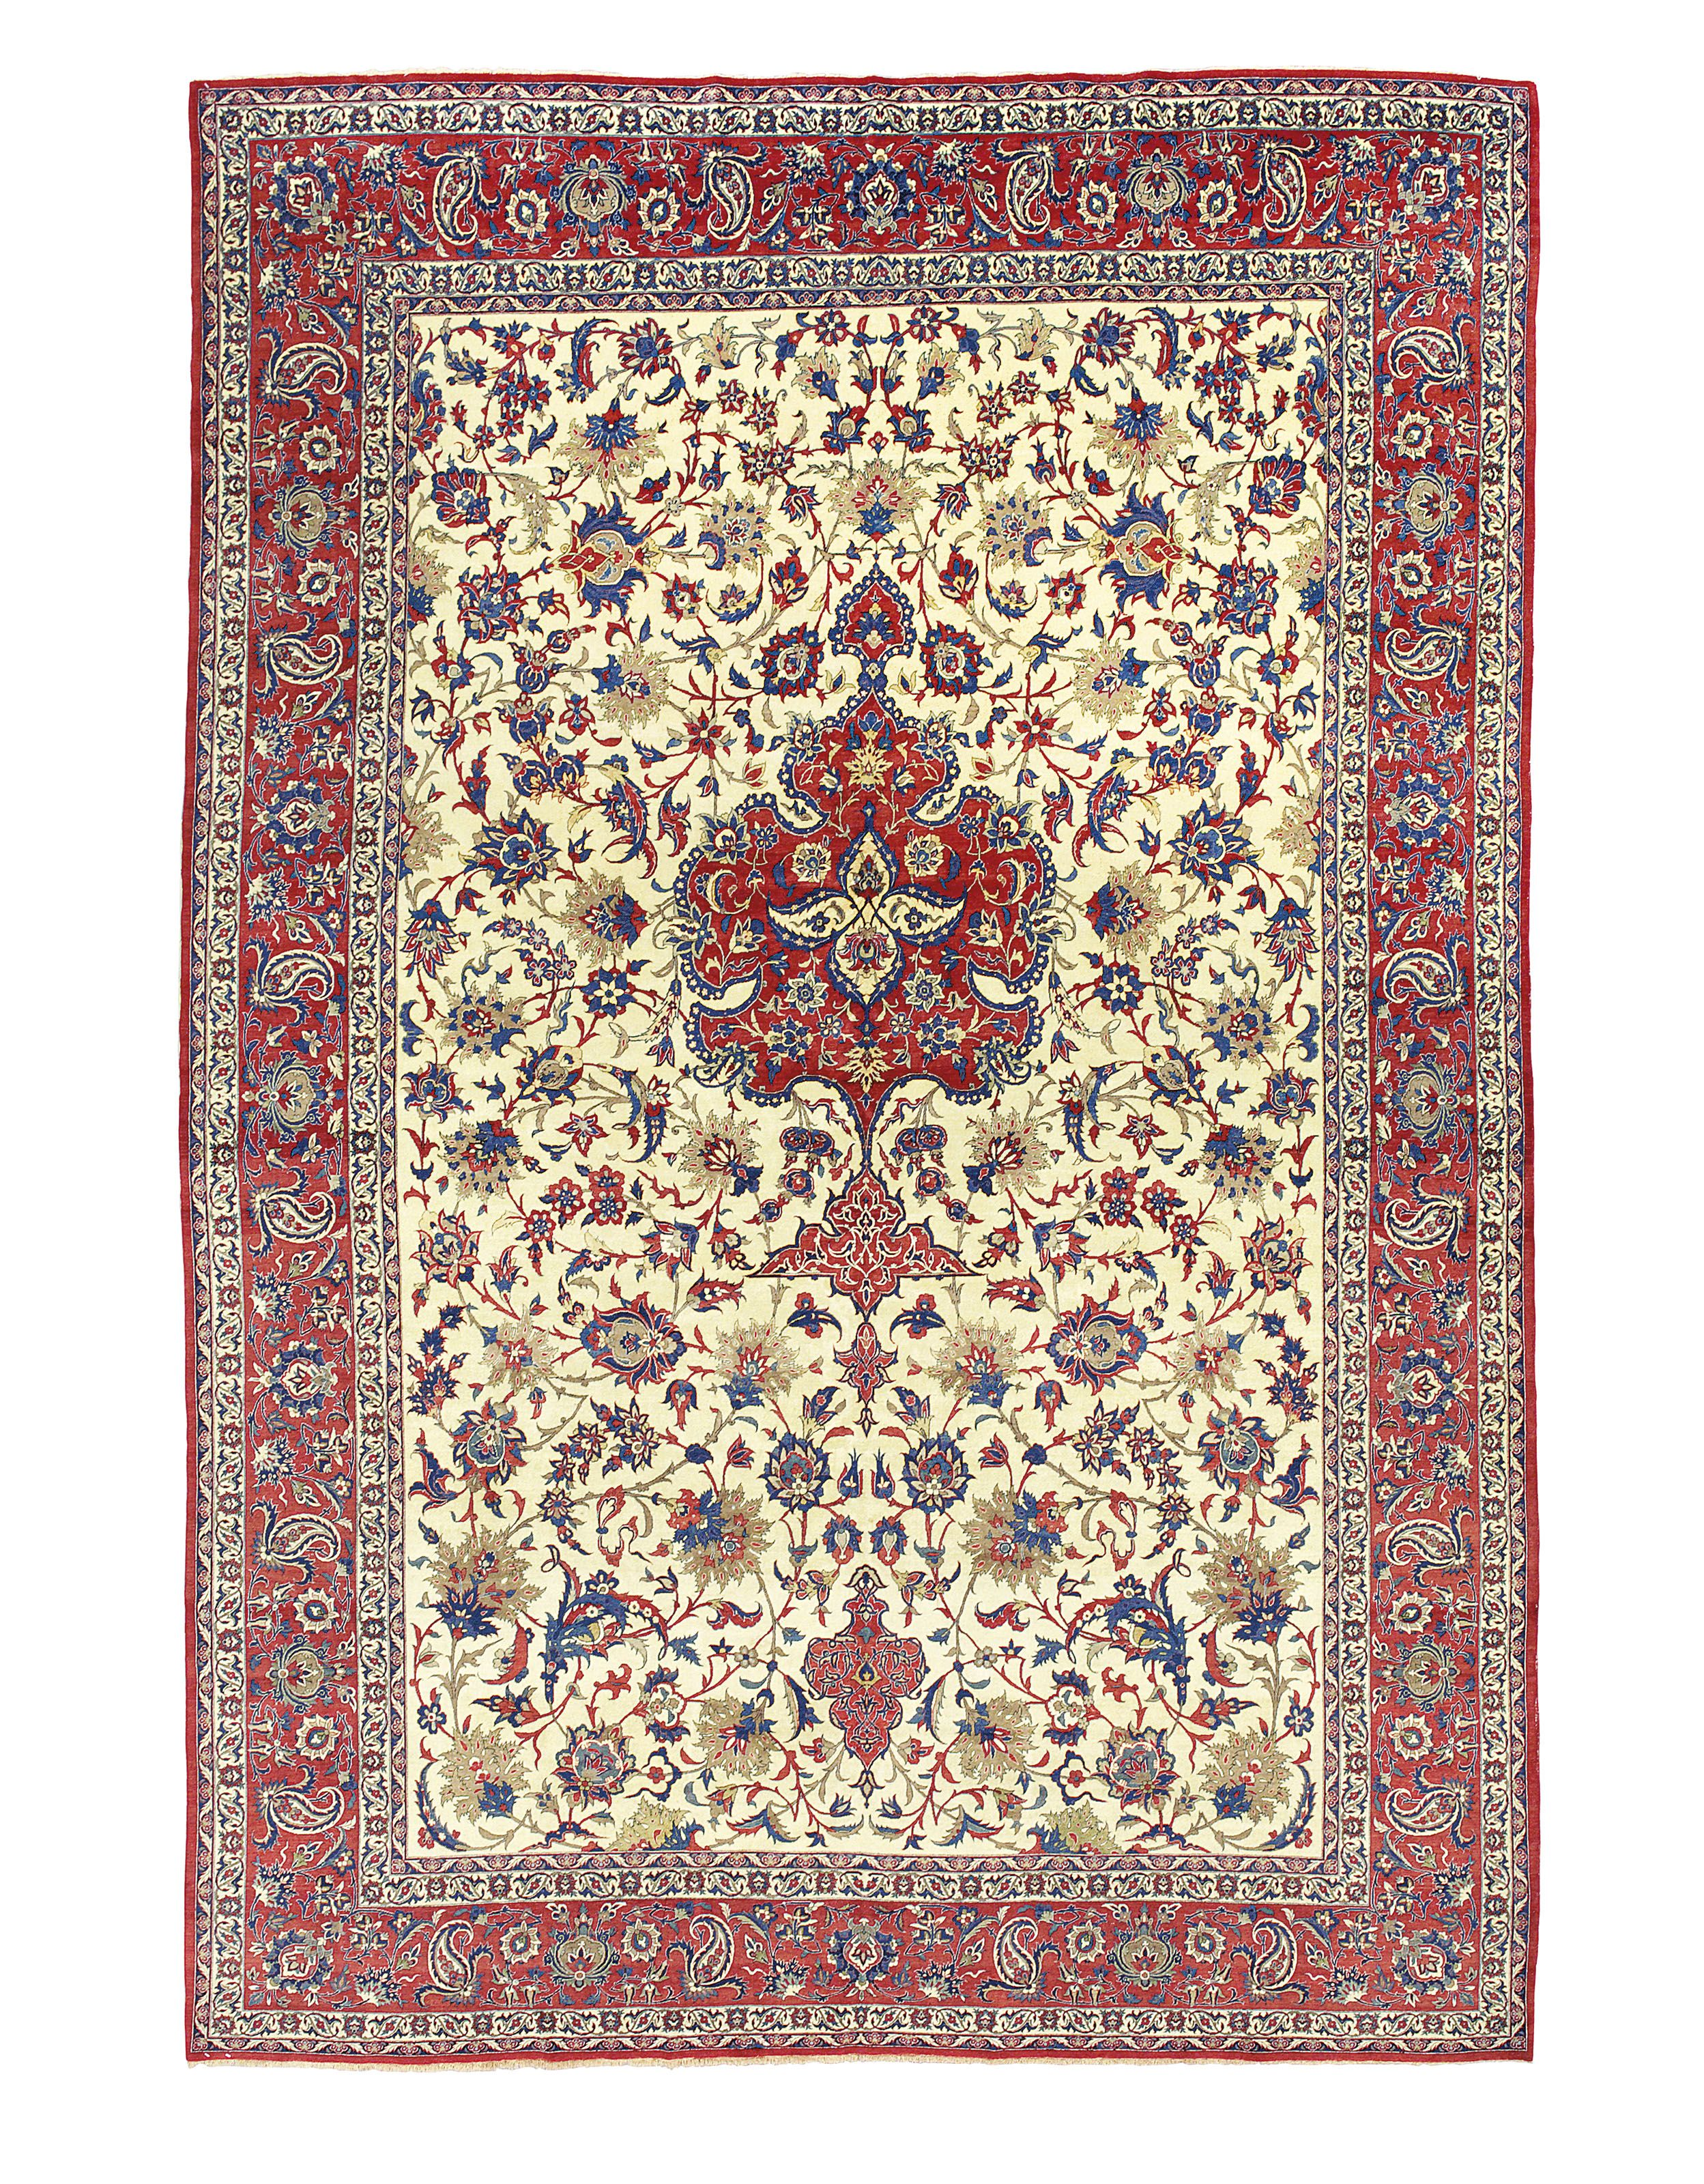 Isfahan Carpet Central Persia Circa 1930 12ft 4in X 8ft 2in 376cm X 248cm Christie S